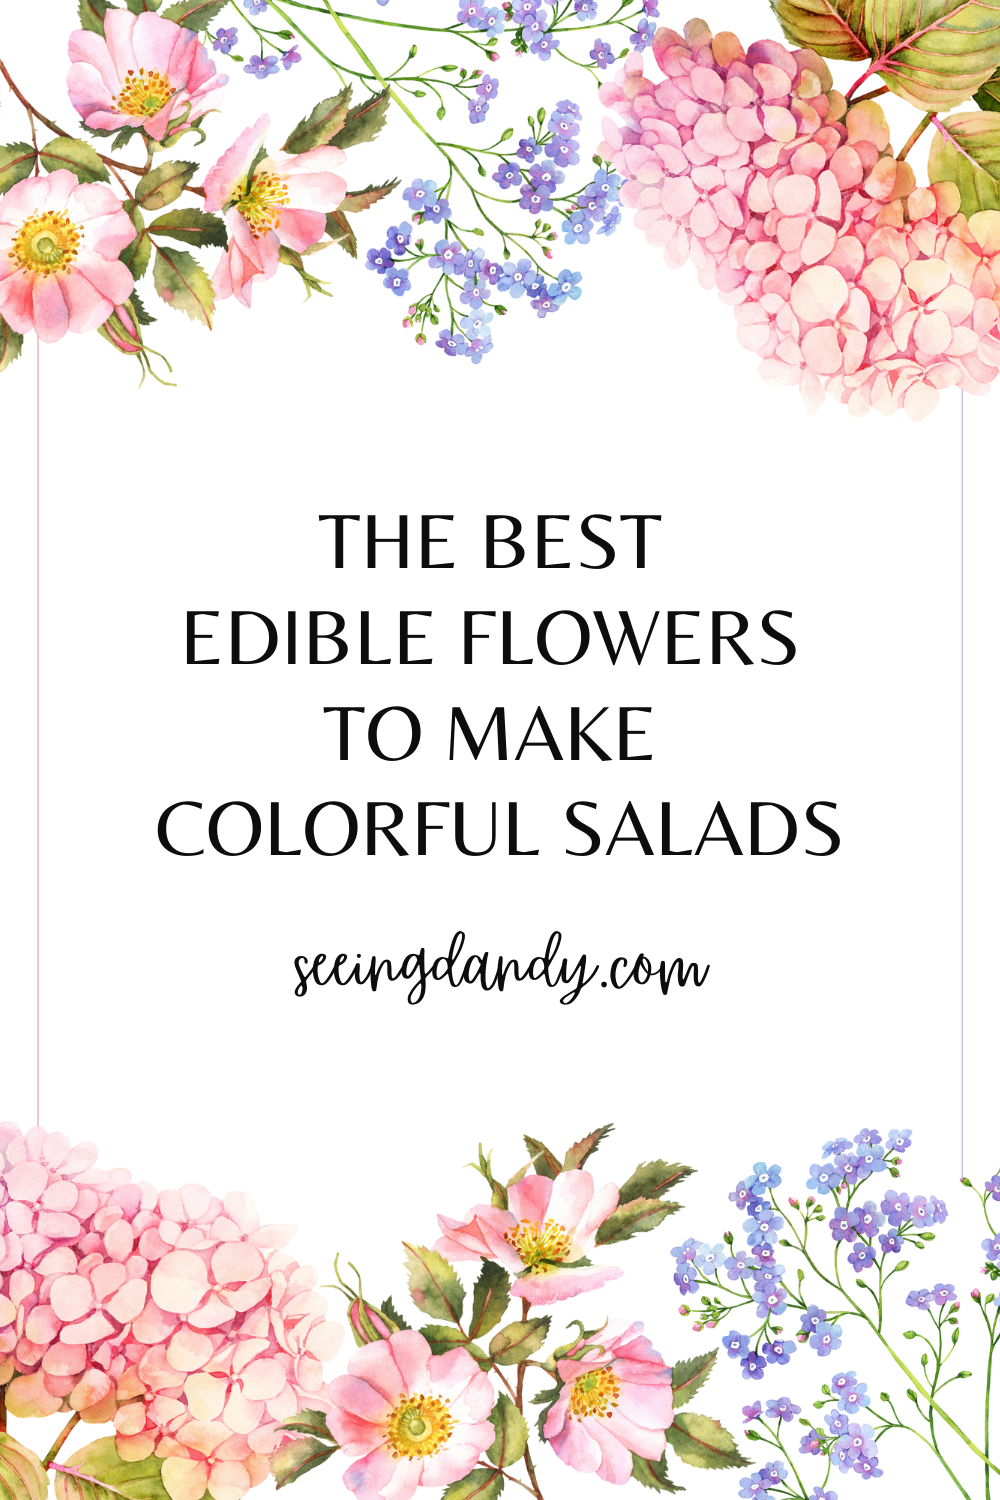 how to make colorful salads using edible flowers